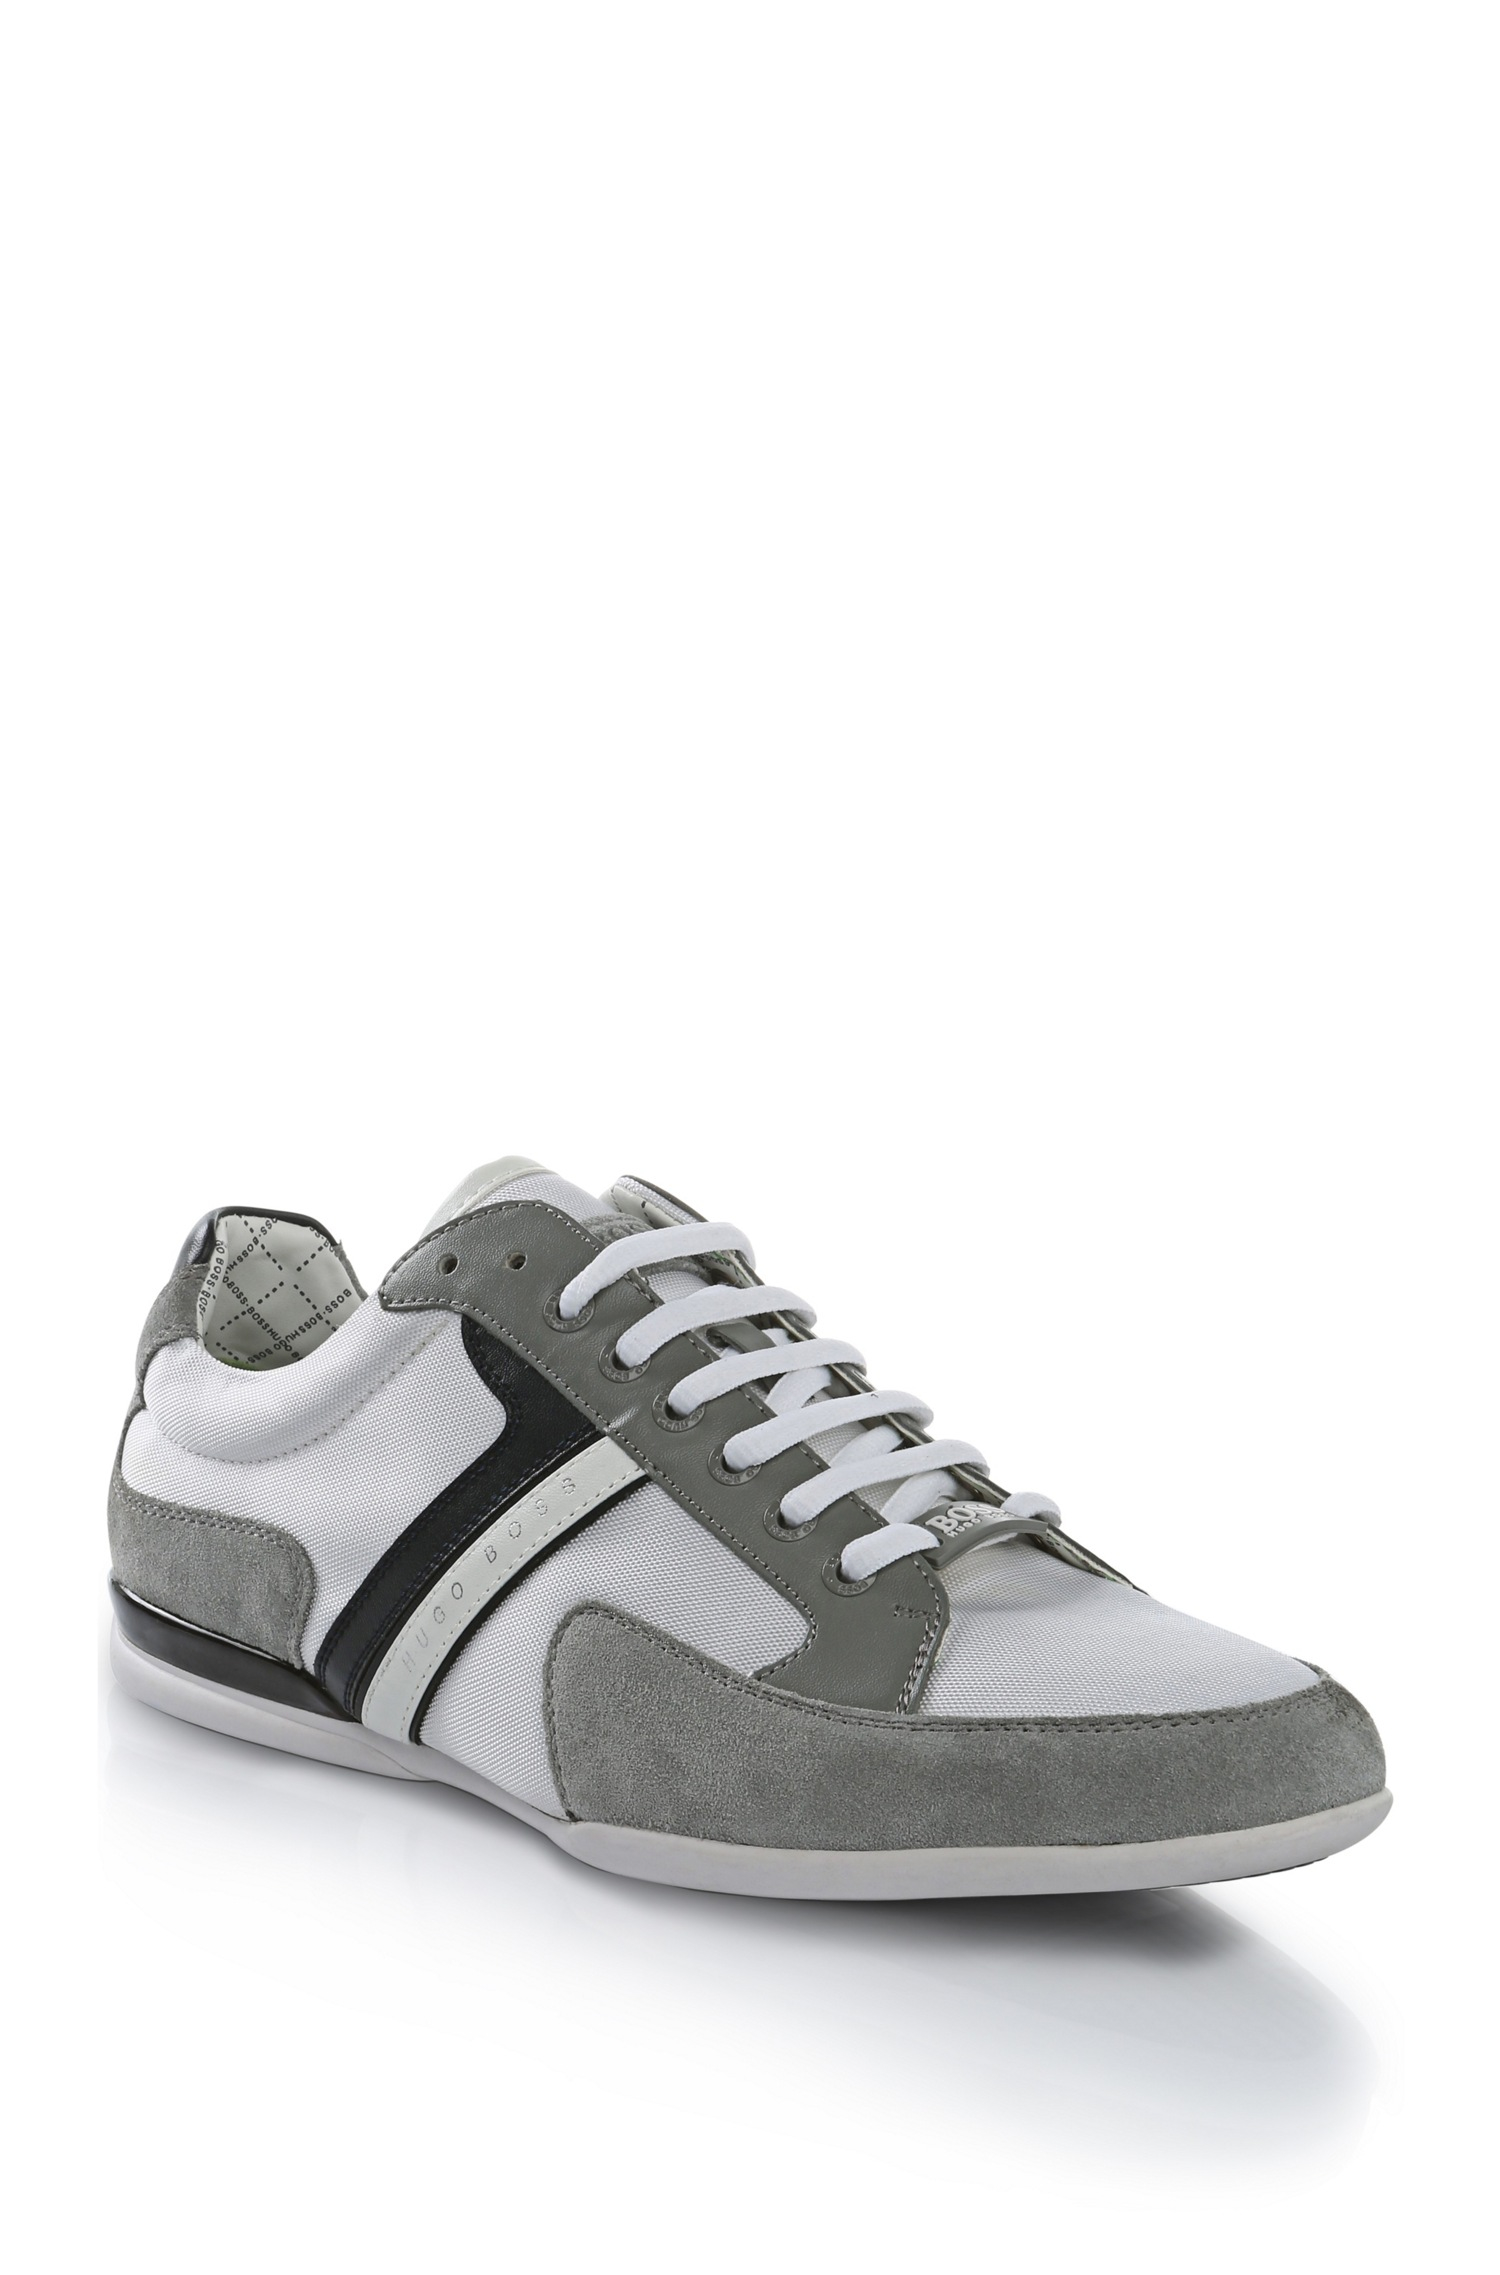 boss green 39 spacit 39 leather and suede sneakers in gray for men lyst. Black Bedroom Furniture Sets. Home Design Ideas